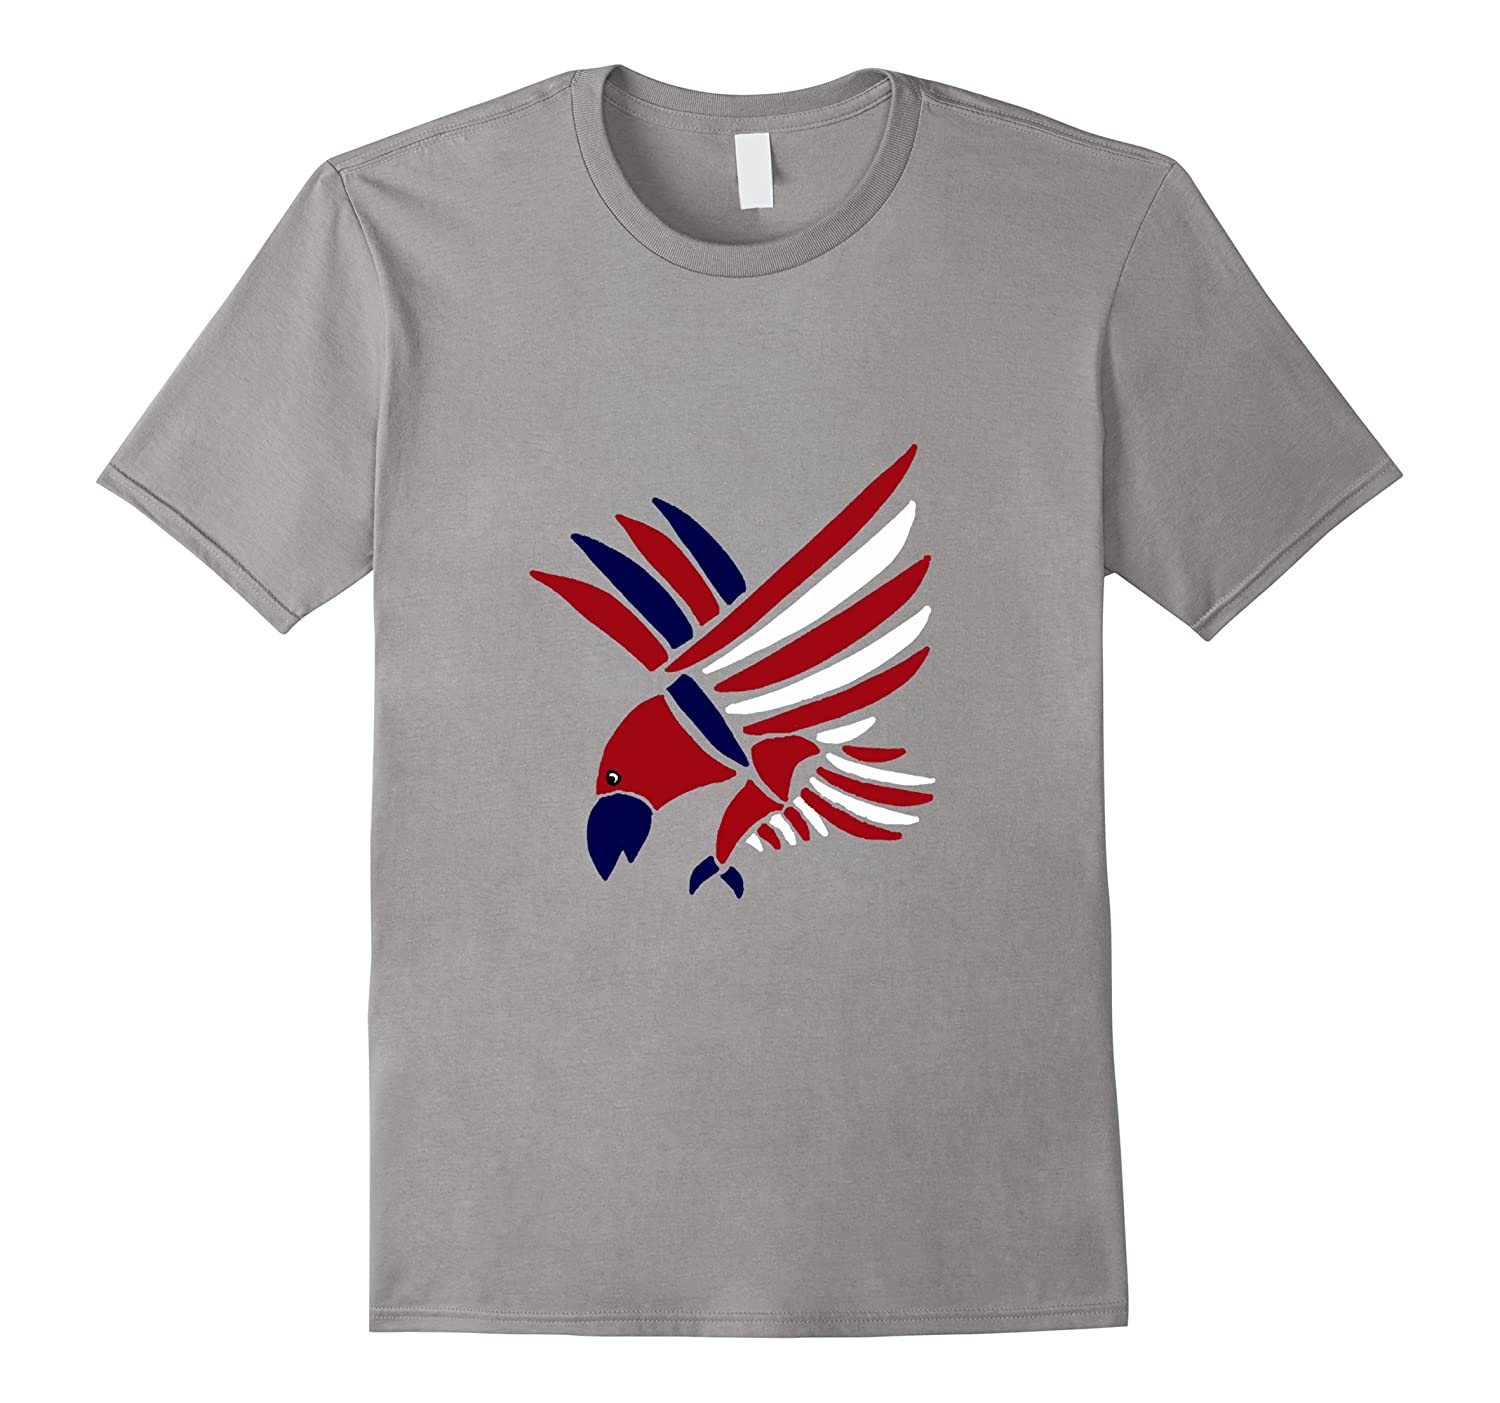 Smiletodaytees Patriotic Red White and Blue Eagle T-shirt-TD